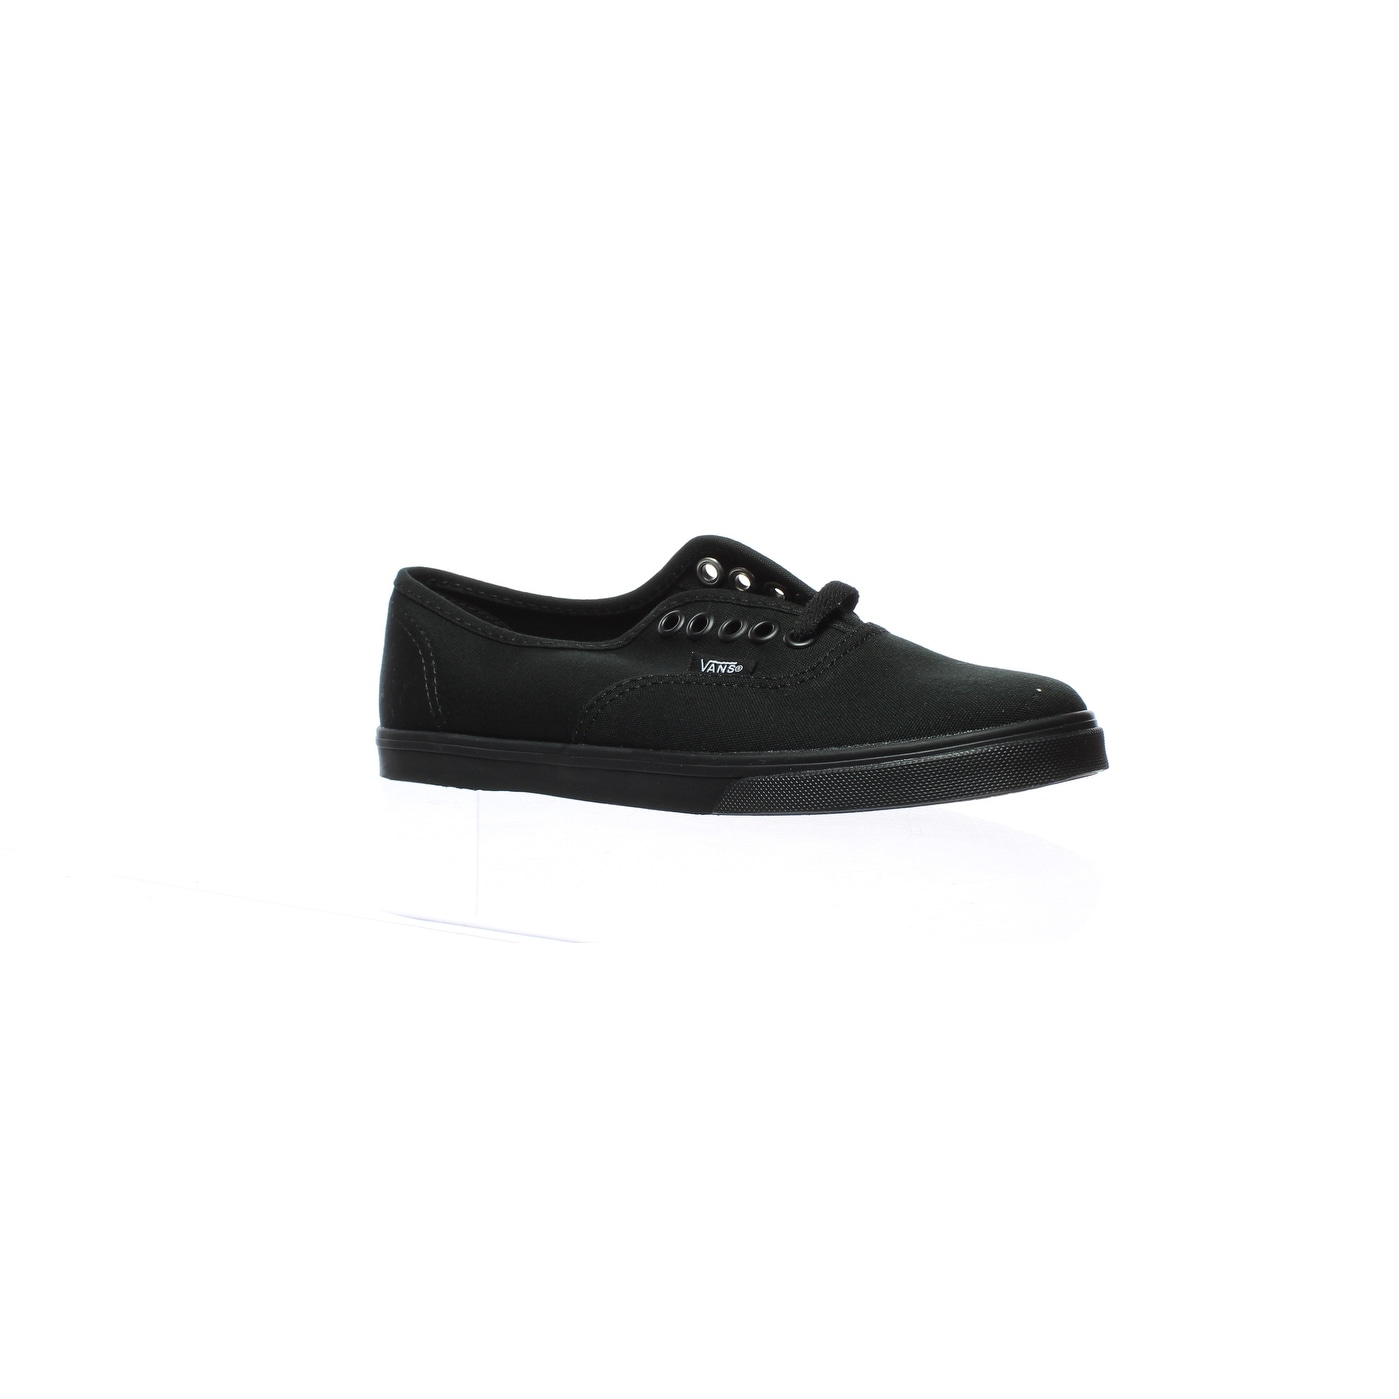 7a85194255 Vans Shoes   Shop our Best Clothing & Shoes Deals Online at Overstock